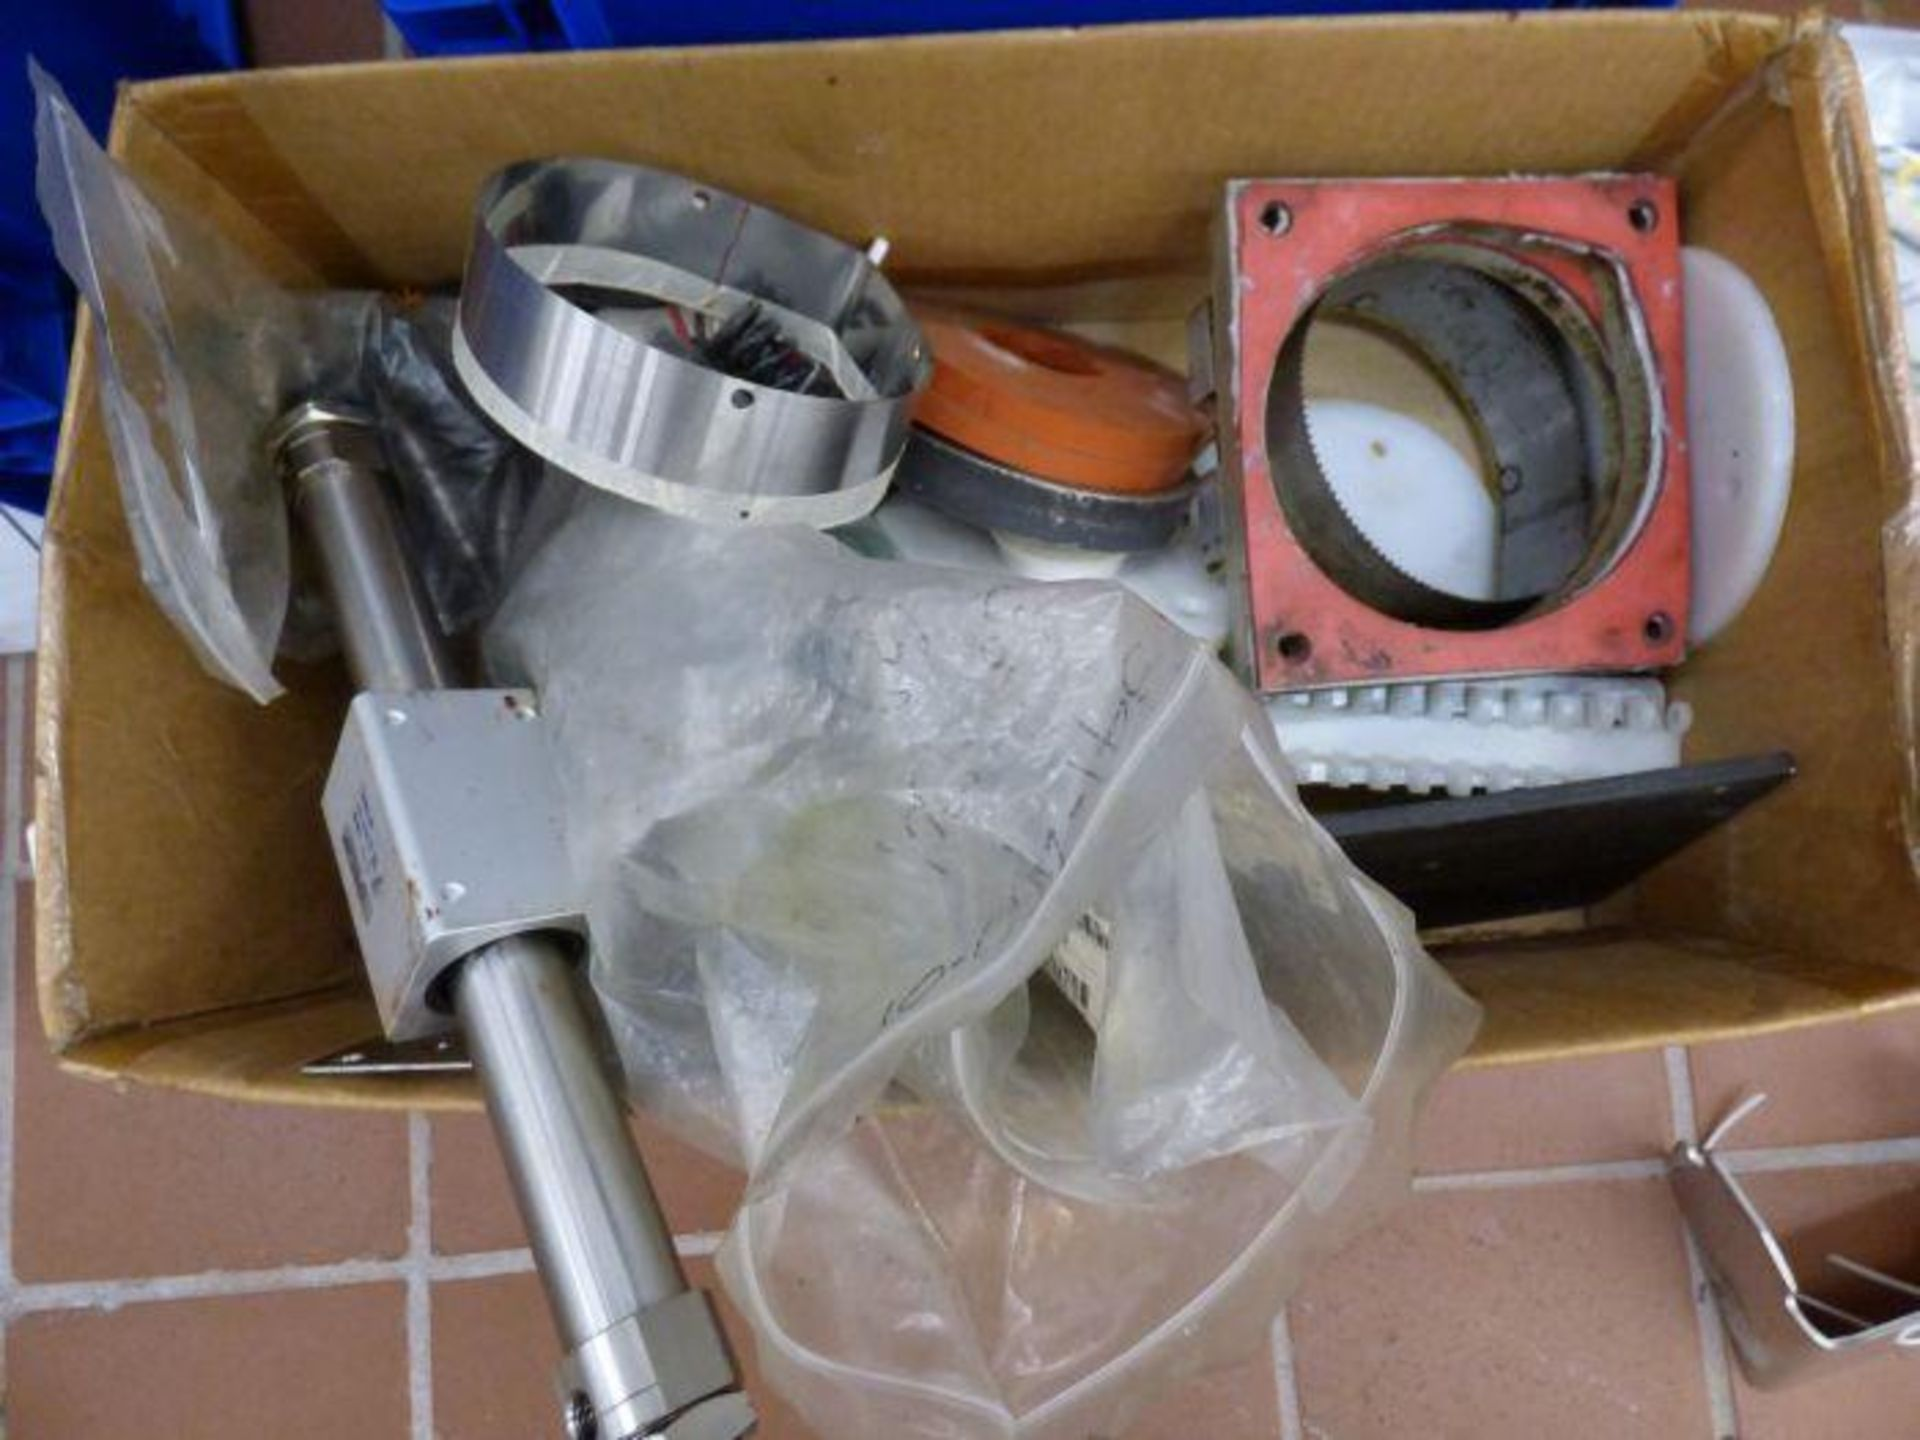 Lot 1108 - Orics Microprocessor Controlled Stainless Steel Cup Sealing Machine with Elevator and Spare Parts